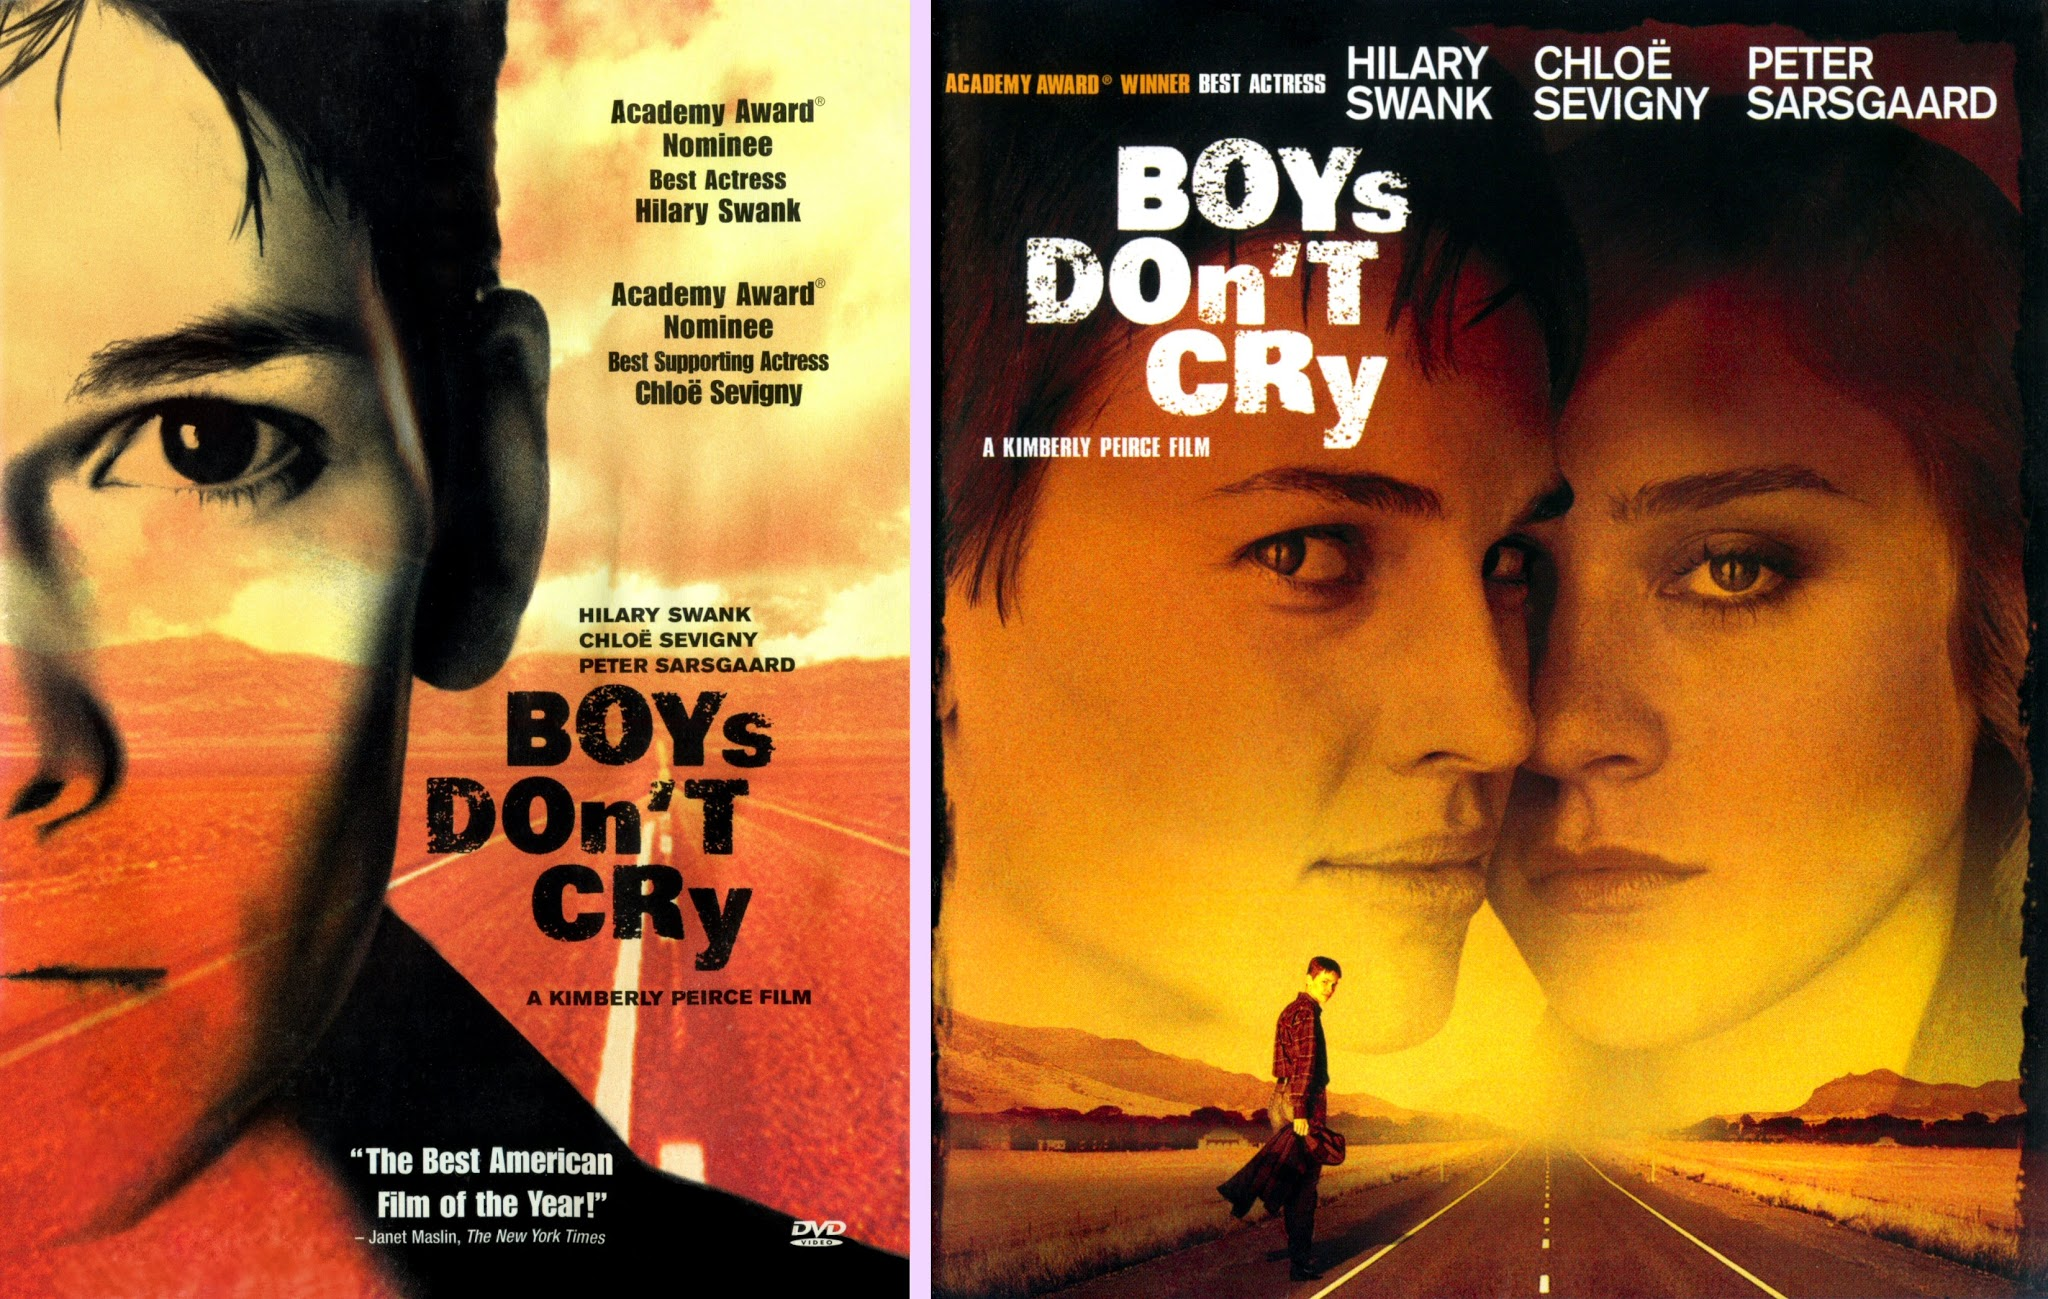 boy cry dont essay Boys-dont-cry2jpg - 10473 bytes boys don't cry directed by kimberly peirce, produced by christine vachon (united states, 1991, 85 minutes, b&w and color, 35mm) peirce's film is an essay on the arbitrariness of sexual identity, and a call for a brave and knowing humanity in the face of even the bitterest of hatreds.